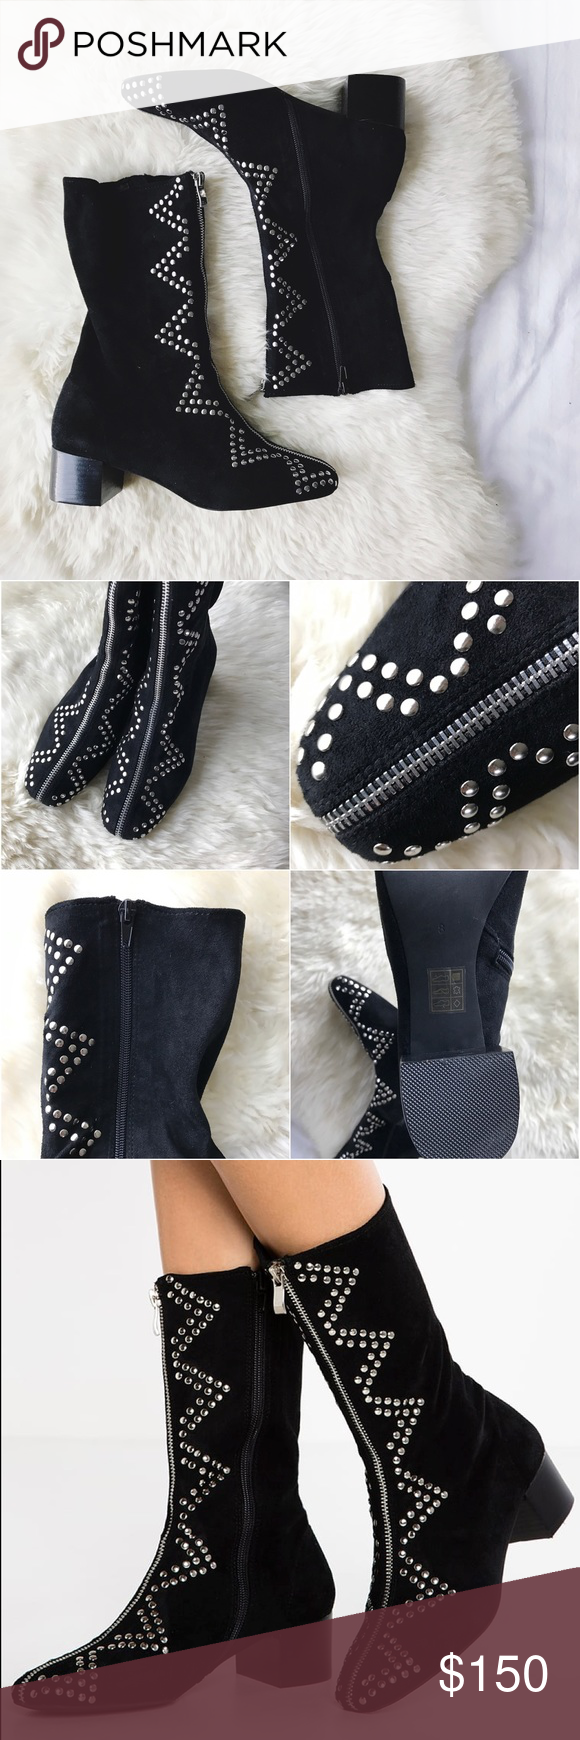 """Jeffrey Campbell Studded Zipper Boots •A shiny silvertone zipper starts at the top and traces a line down the center of this mid-height boot, ending at the vintage-inspired rounded square toe. A zigzag of polished studs are arranged on either side, further embellishing the soft faux suede  •Size 8, true to size.  1 1/2"""" heel, 9 3/4"""" boot shaft.  •New in box.  •NO TRADES/HOLDS/PAYPAL/MERC/VINTED/NONSENSE. Jeffrey Campbell Shoes Ankle Boots & Booties"""